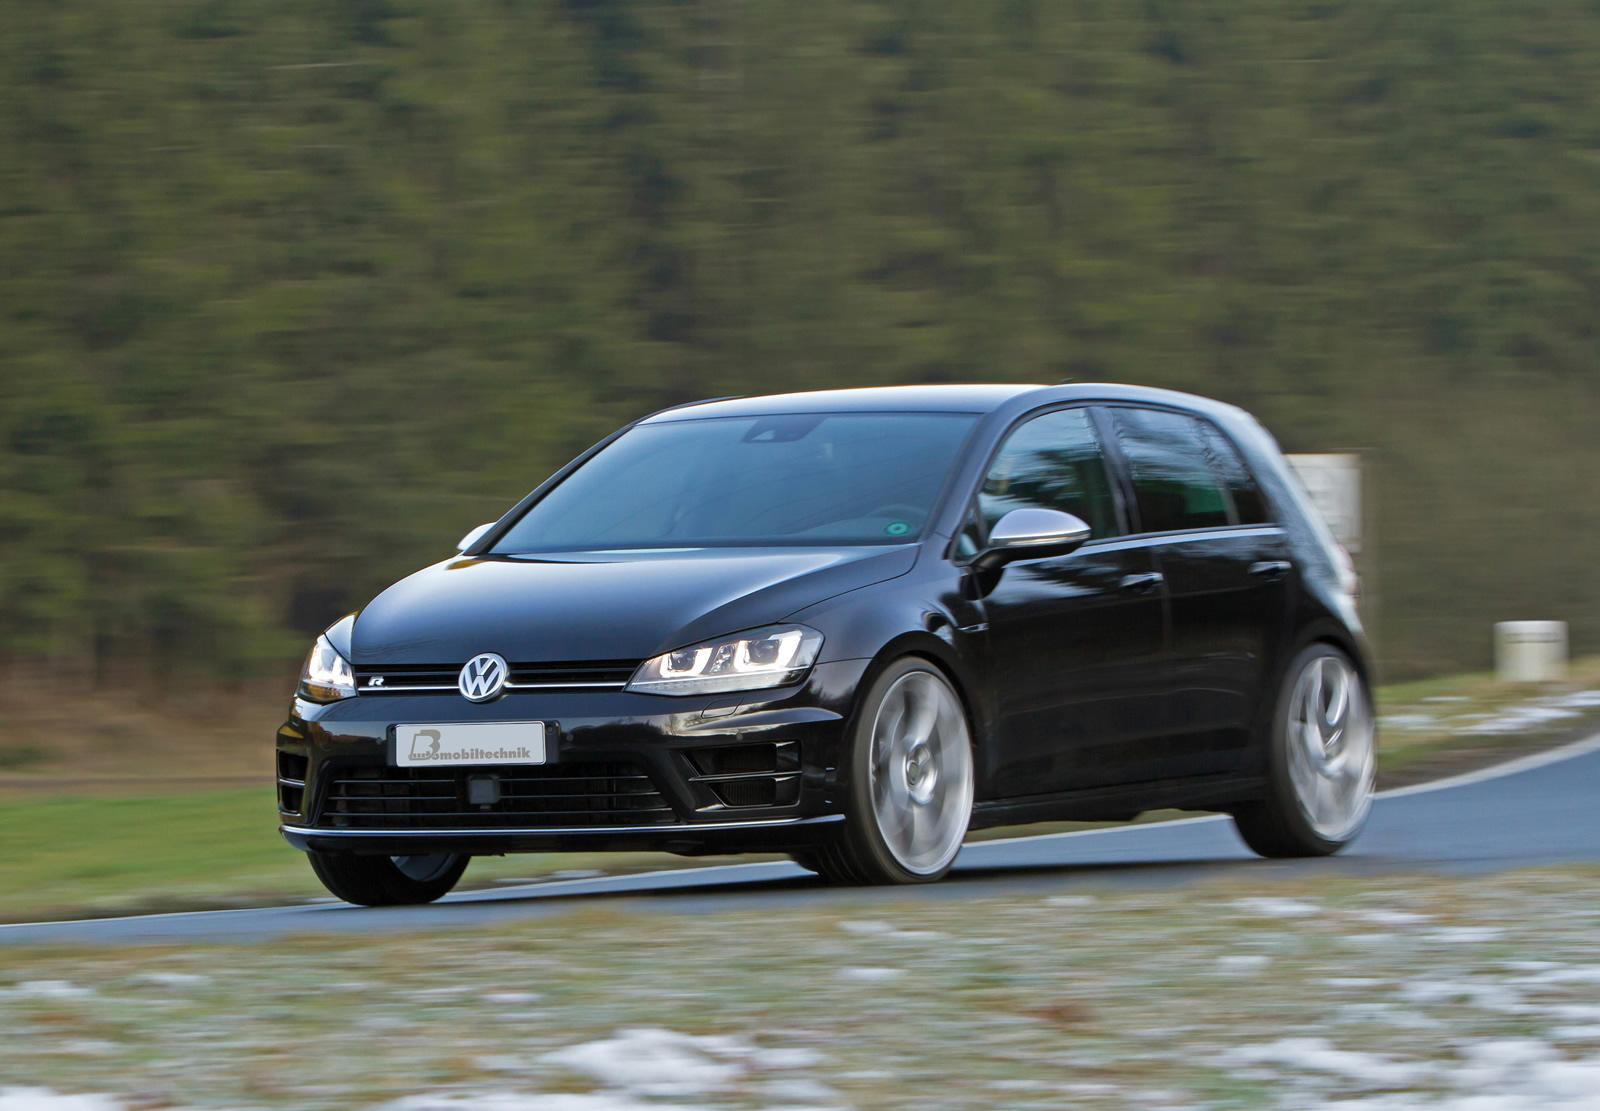 golf 7 r taken to 420 hp by b b automobiltechnik autoevolution. Black Bedroom Furniture Sets. Home Design Ideas